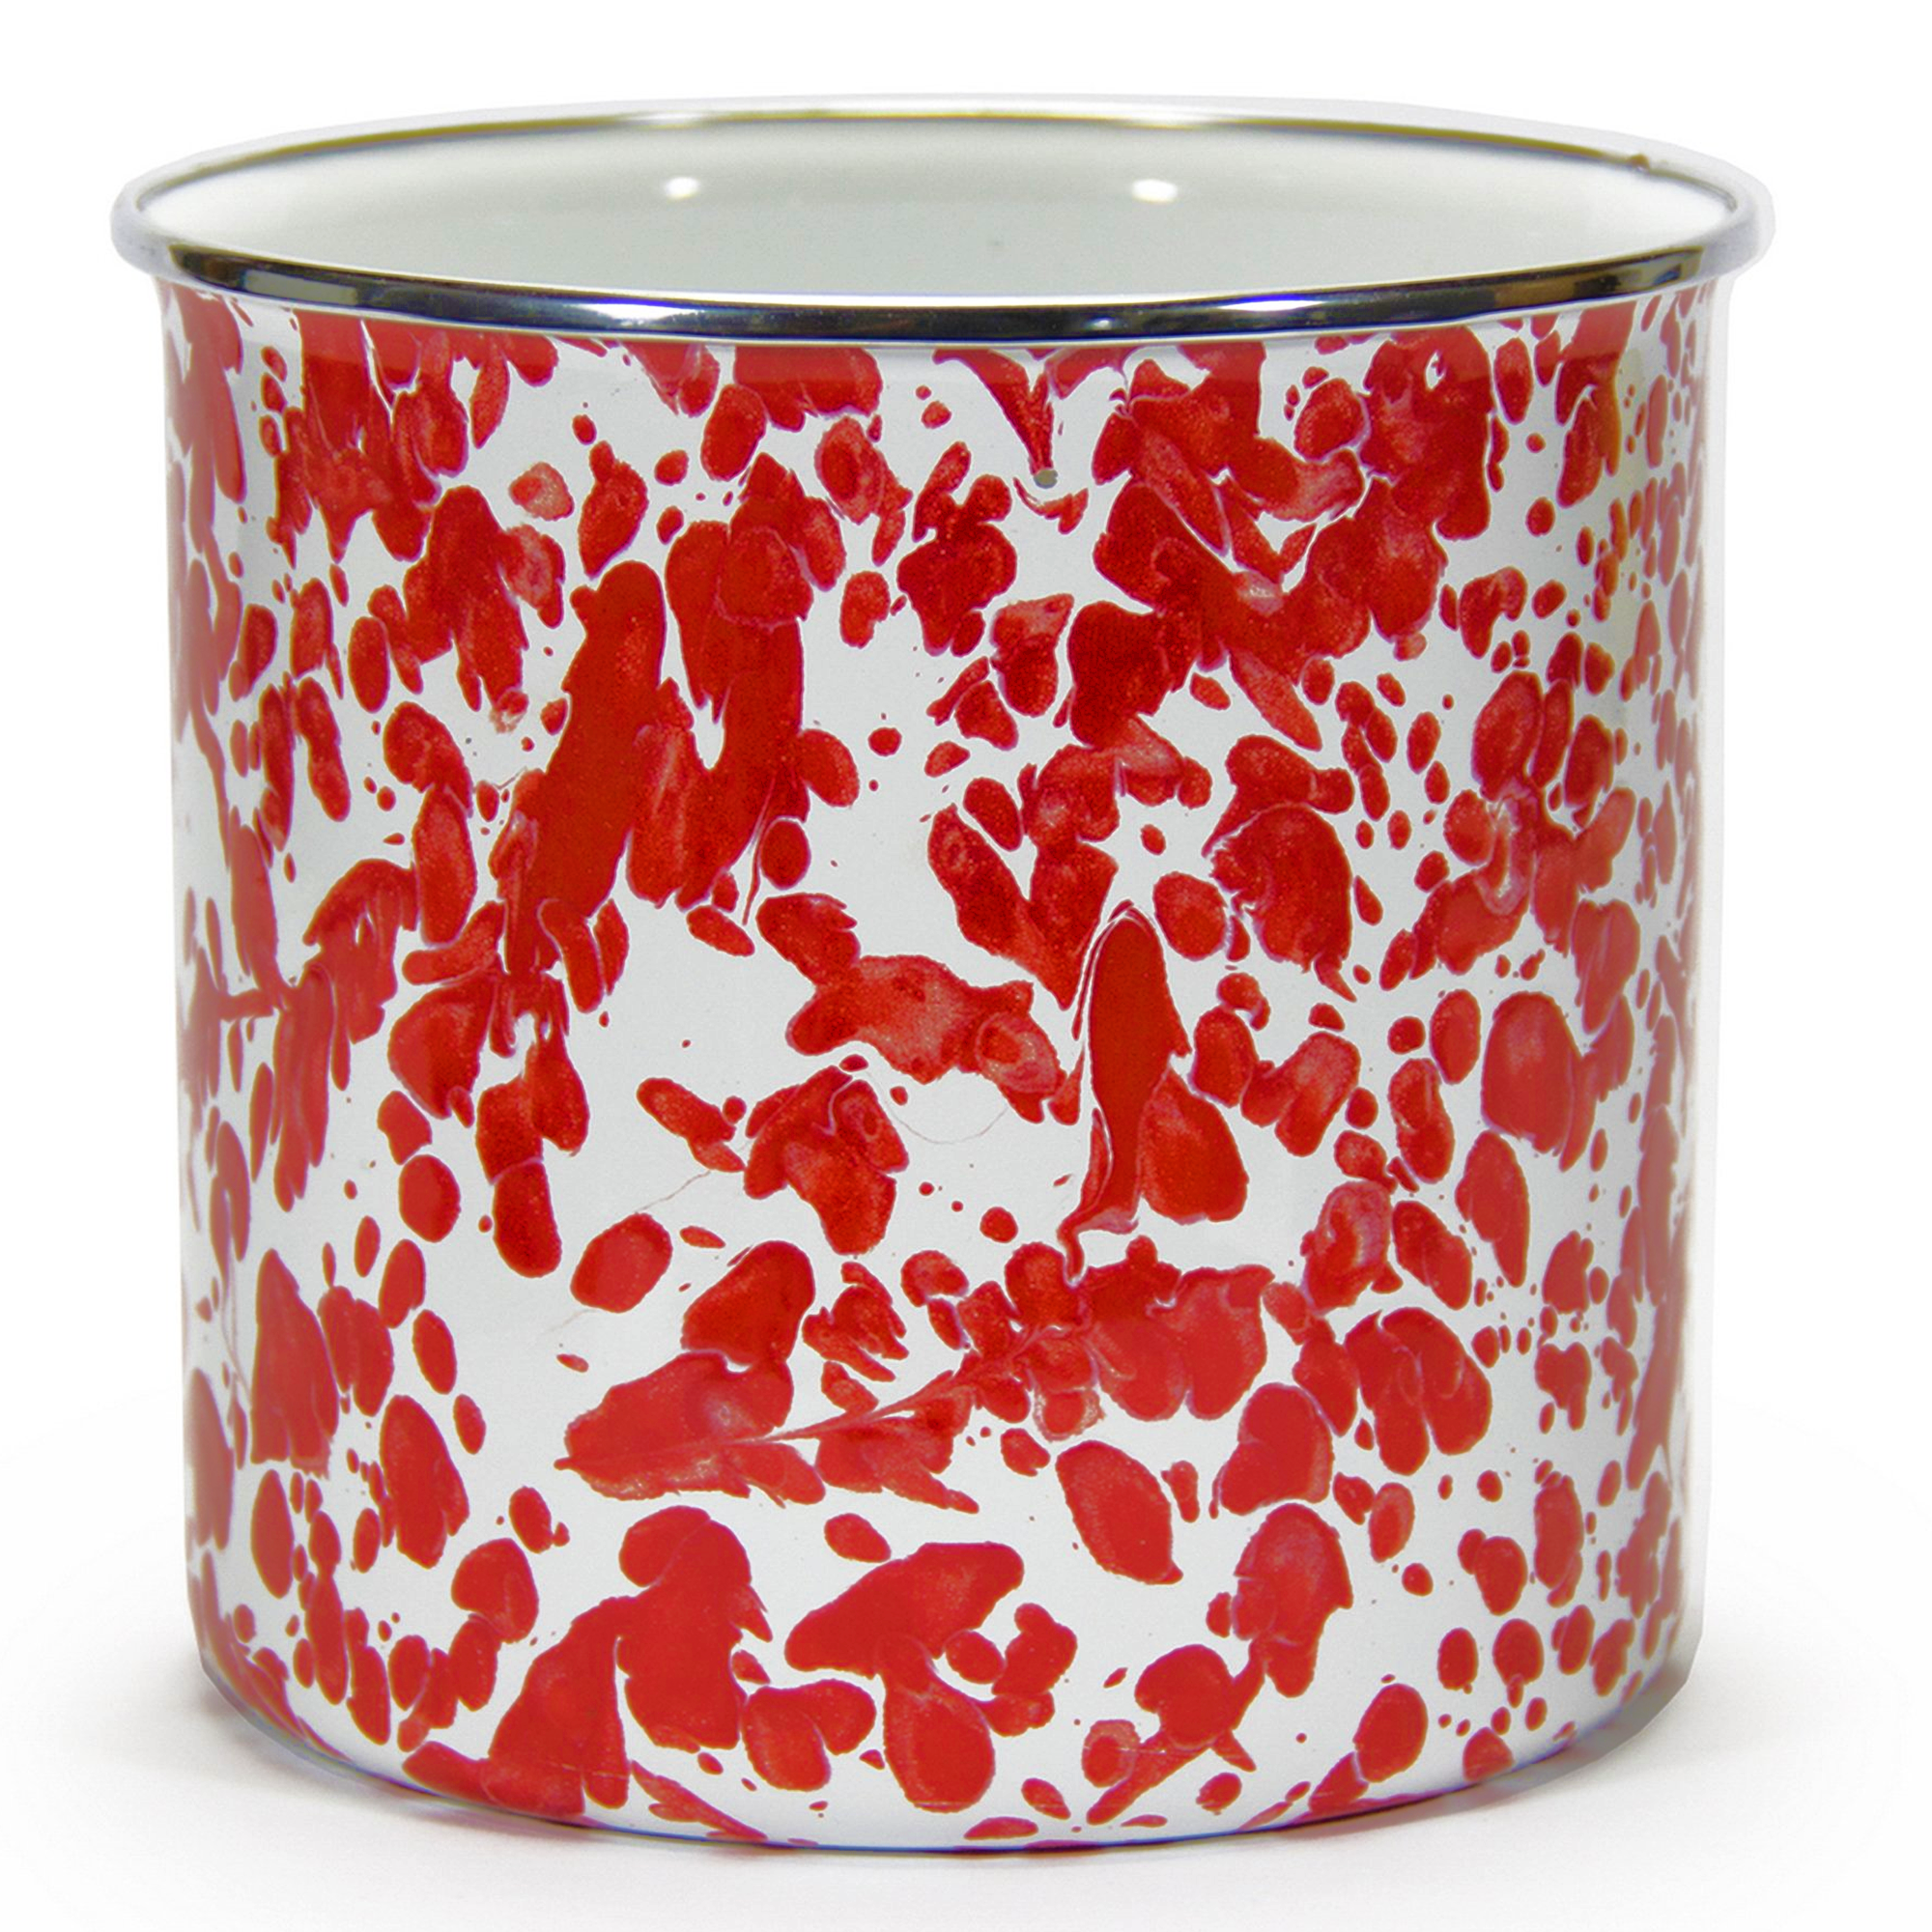 RD34 Red Swirl Utensil Holder